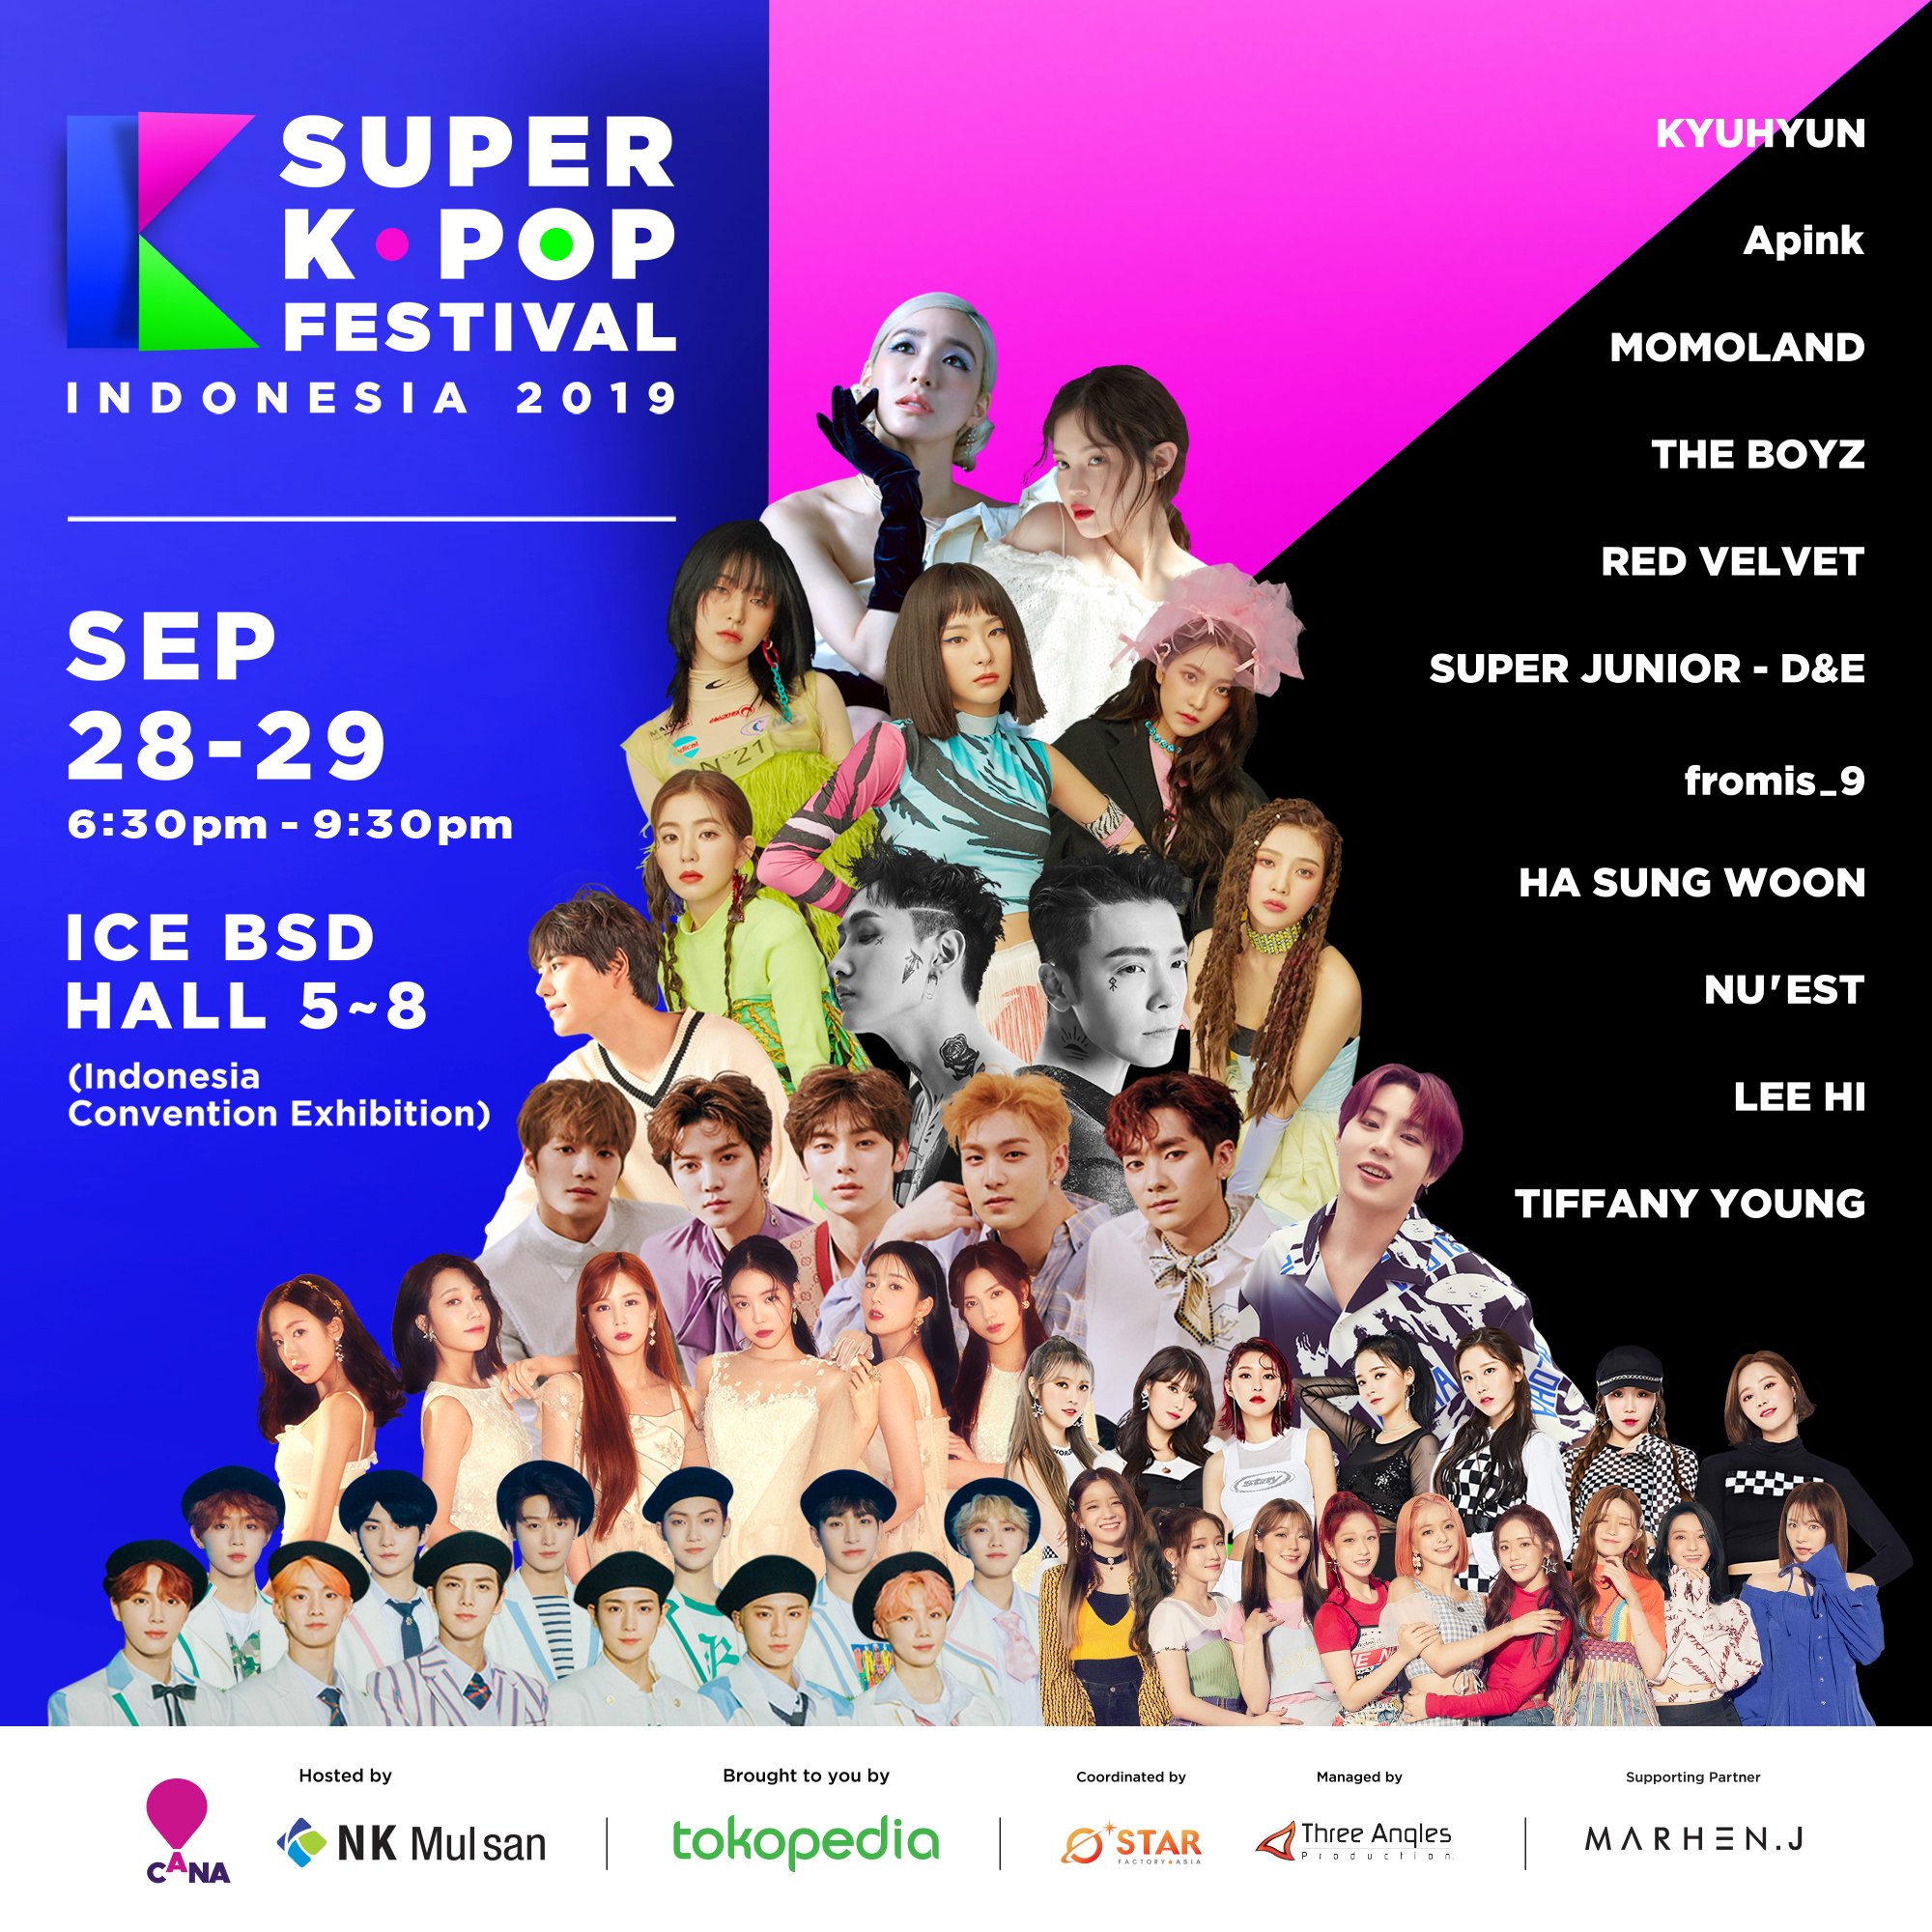 Update Super Kpop Festival Indonesia 2019: Final Line Up & 2 Day Pass!